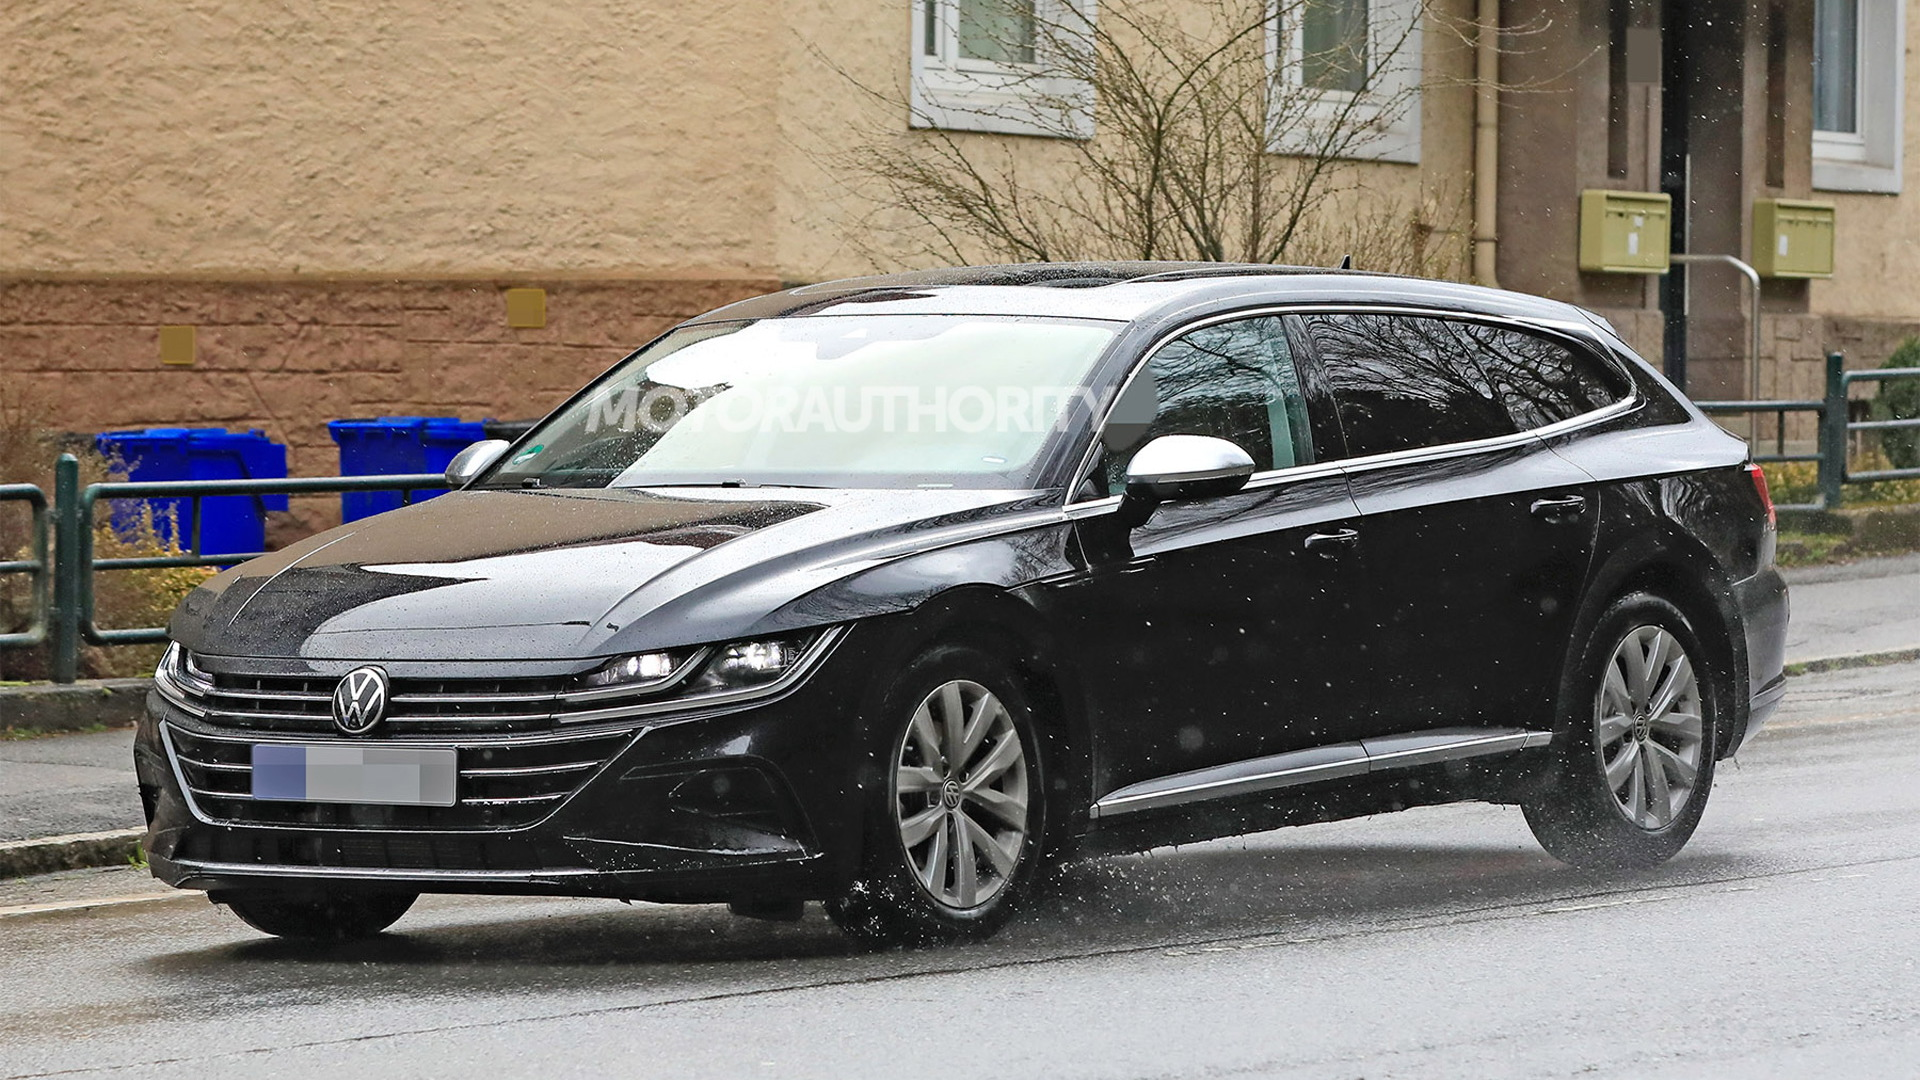 2021 Volkswagen Arteon Shooting Brake spy shots - Photo credit: S. Baldauf/SB-Medien